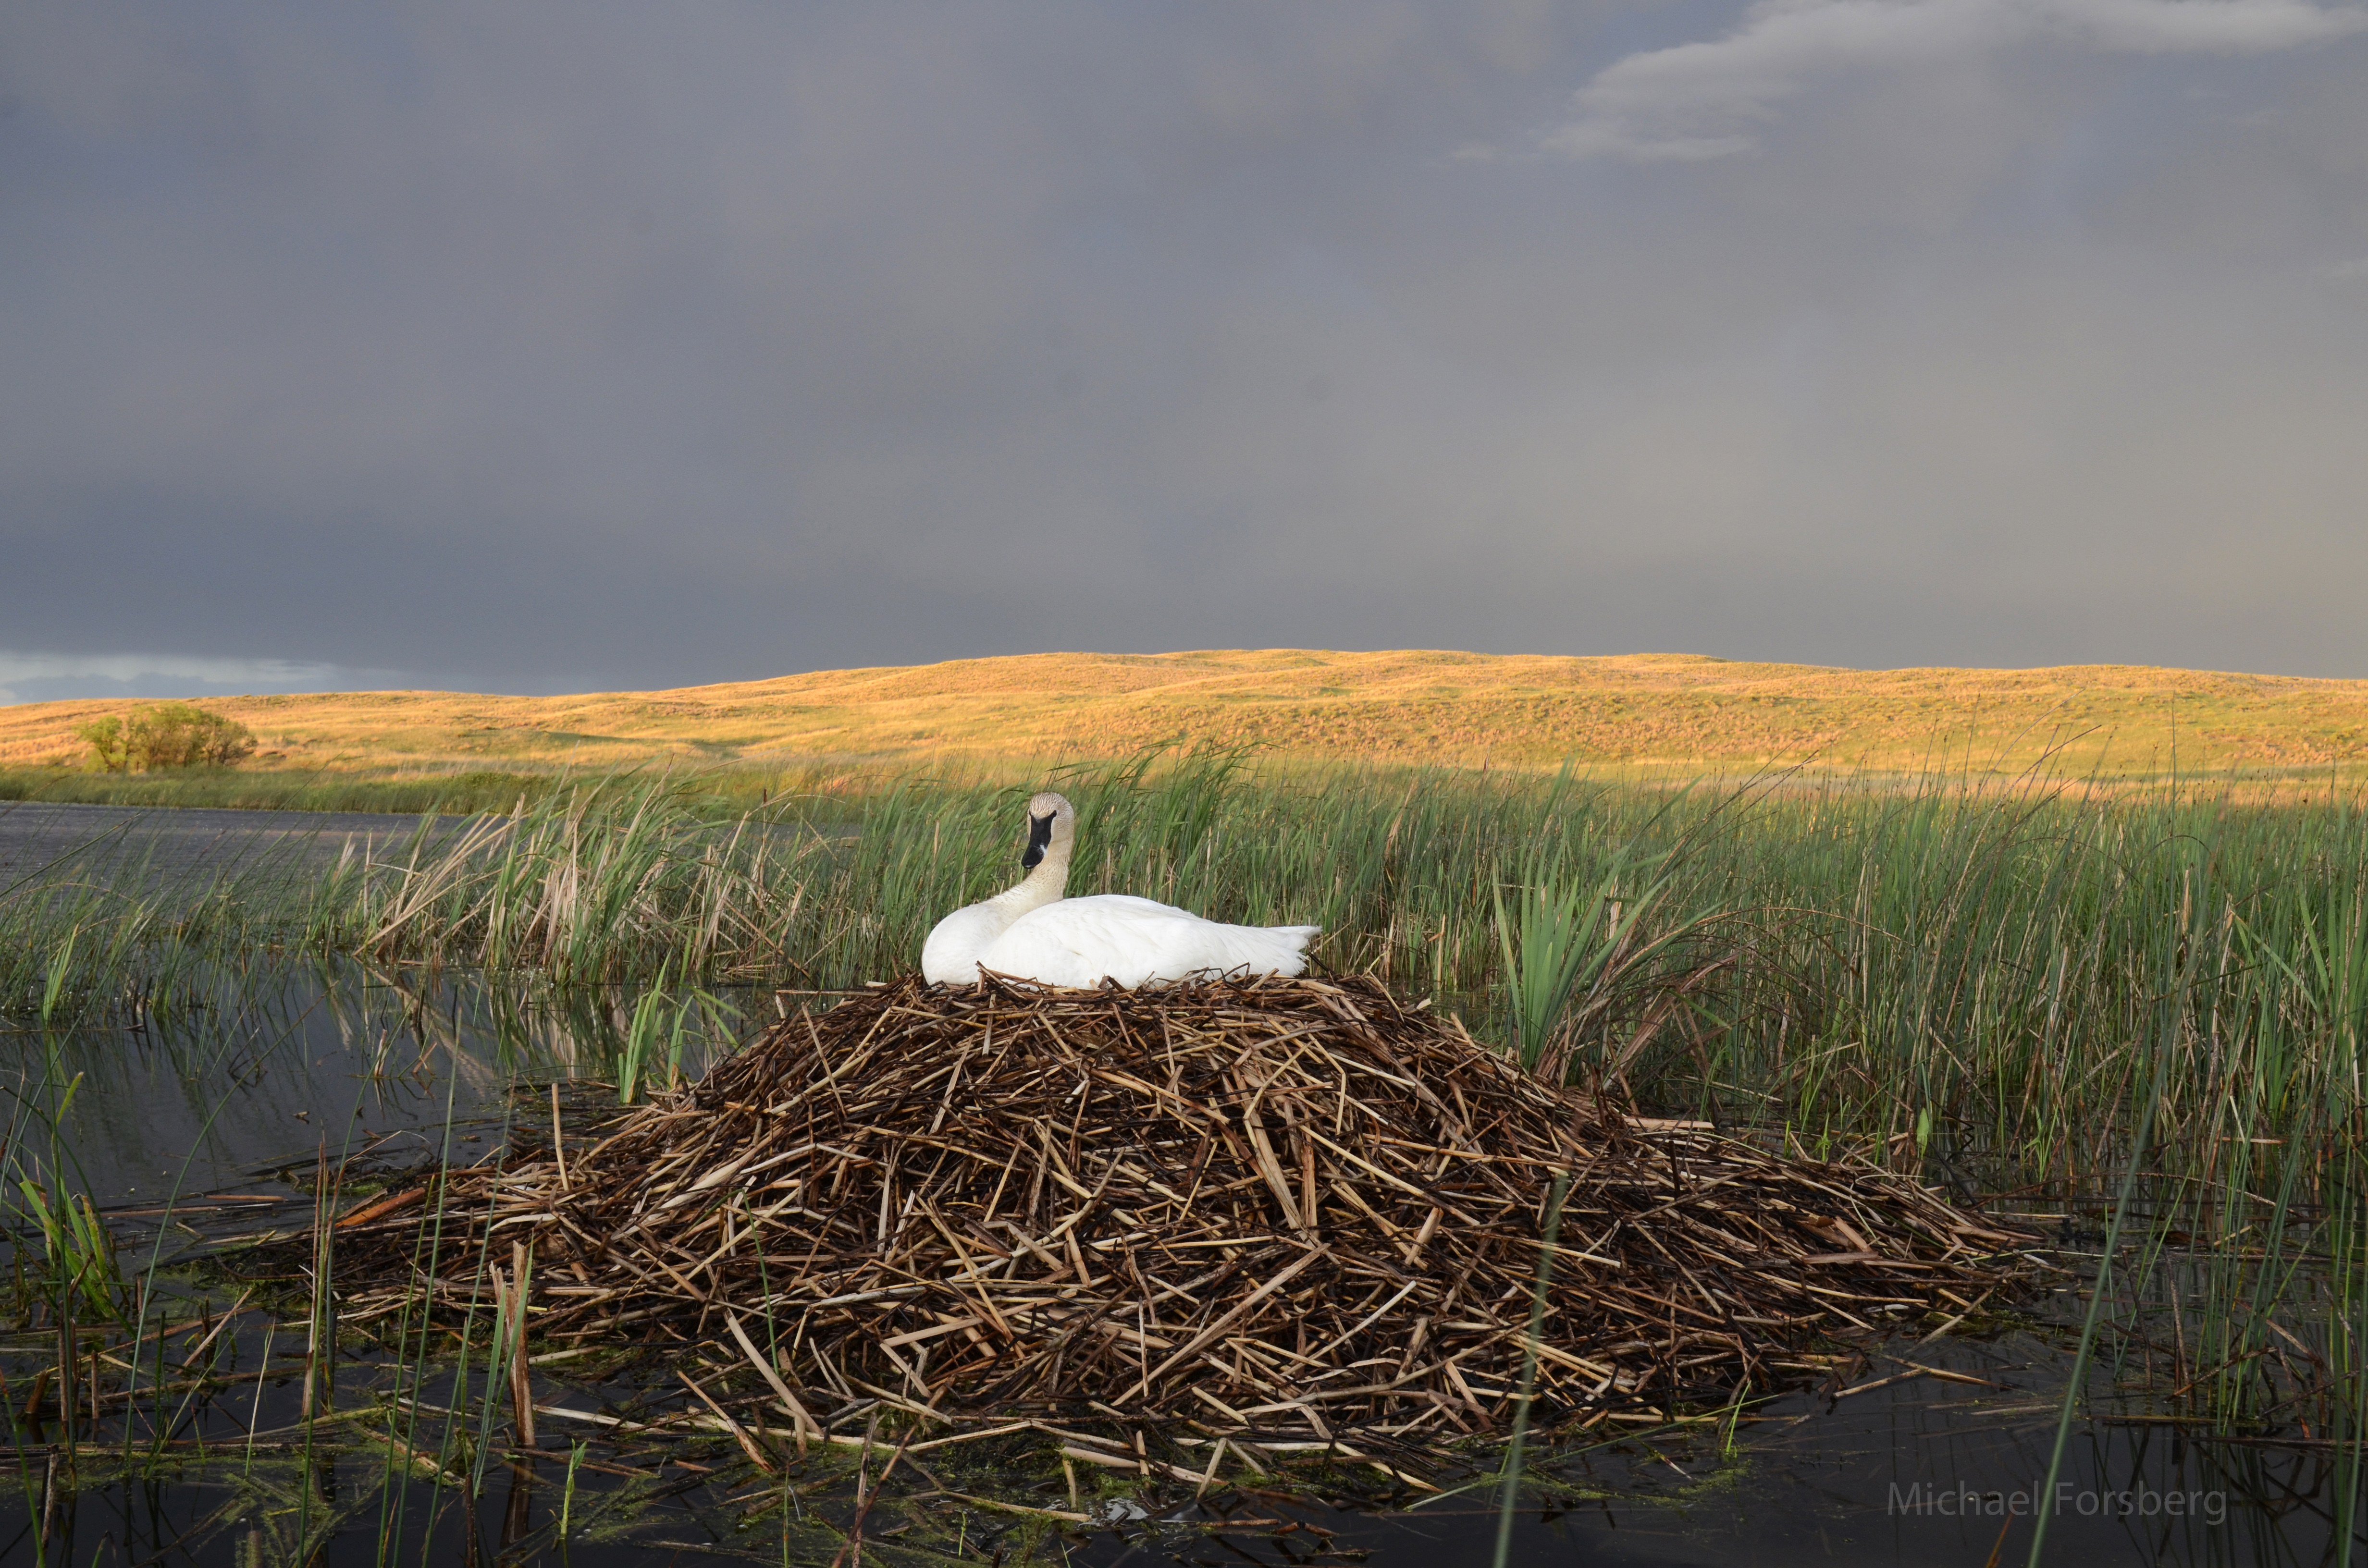 Photographer Michael Forsberg shares a story and collection of photos (including this one) about the reintroduction of trumpeter swans in the Nebraska Sandhills in the latest Platte Basin Timelapse project.